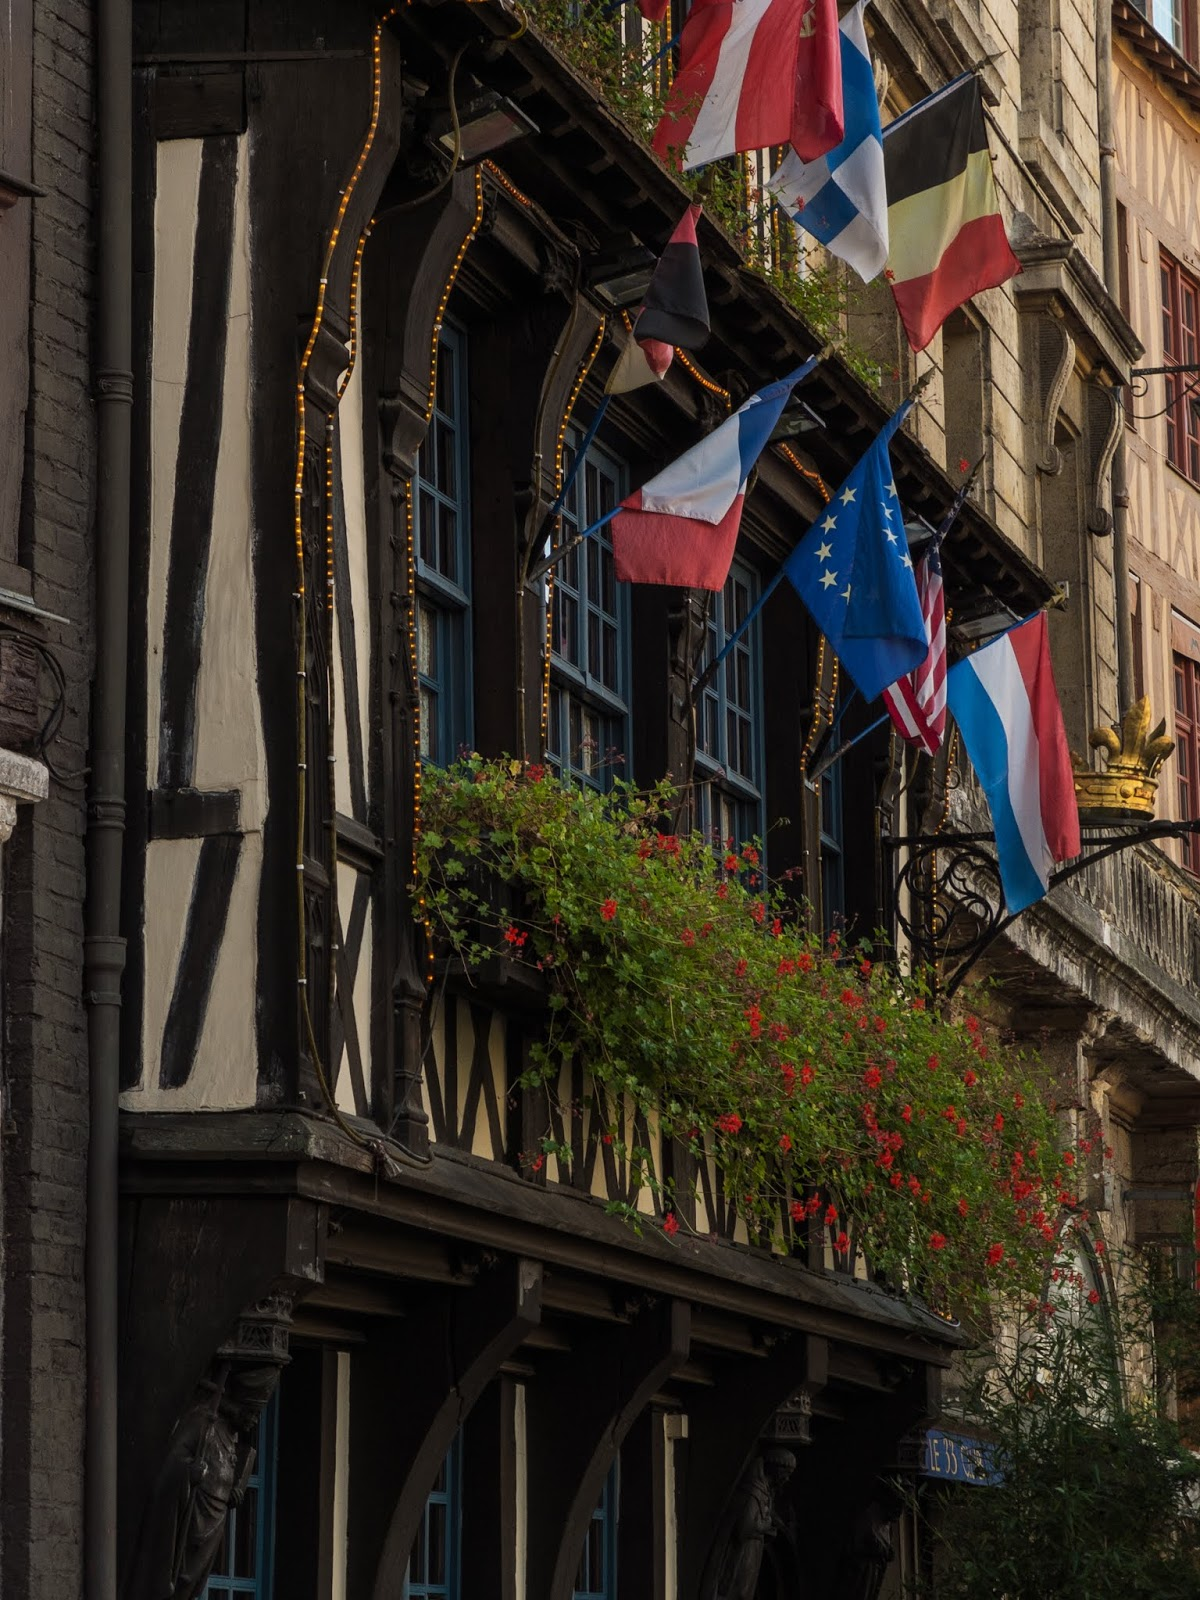 Front of a building with flags and flowers on Place du Vieux Marche in Rouen, France.